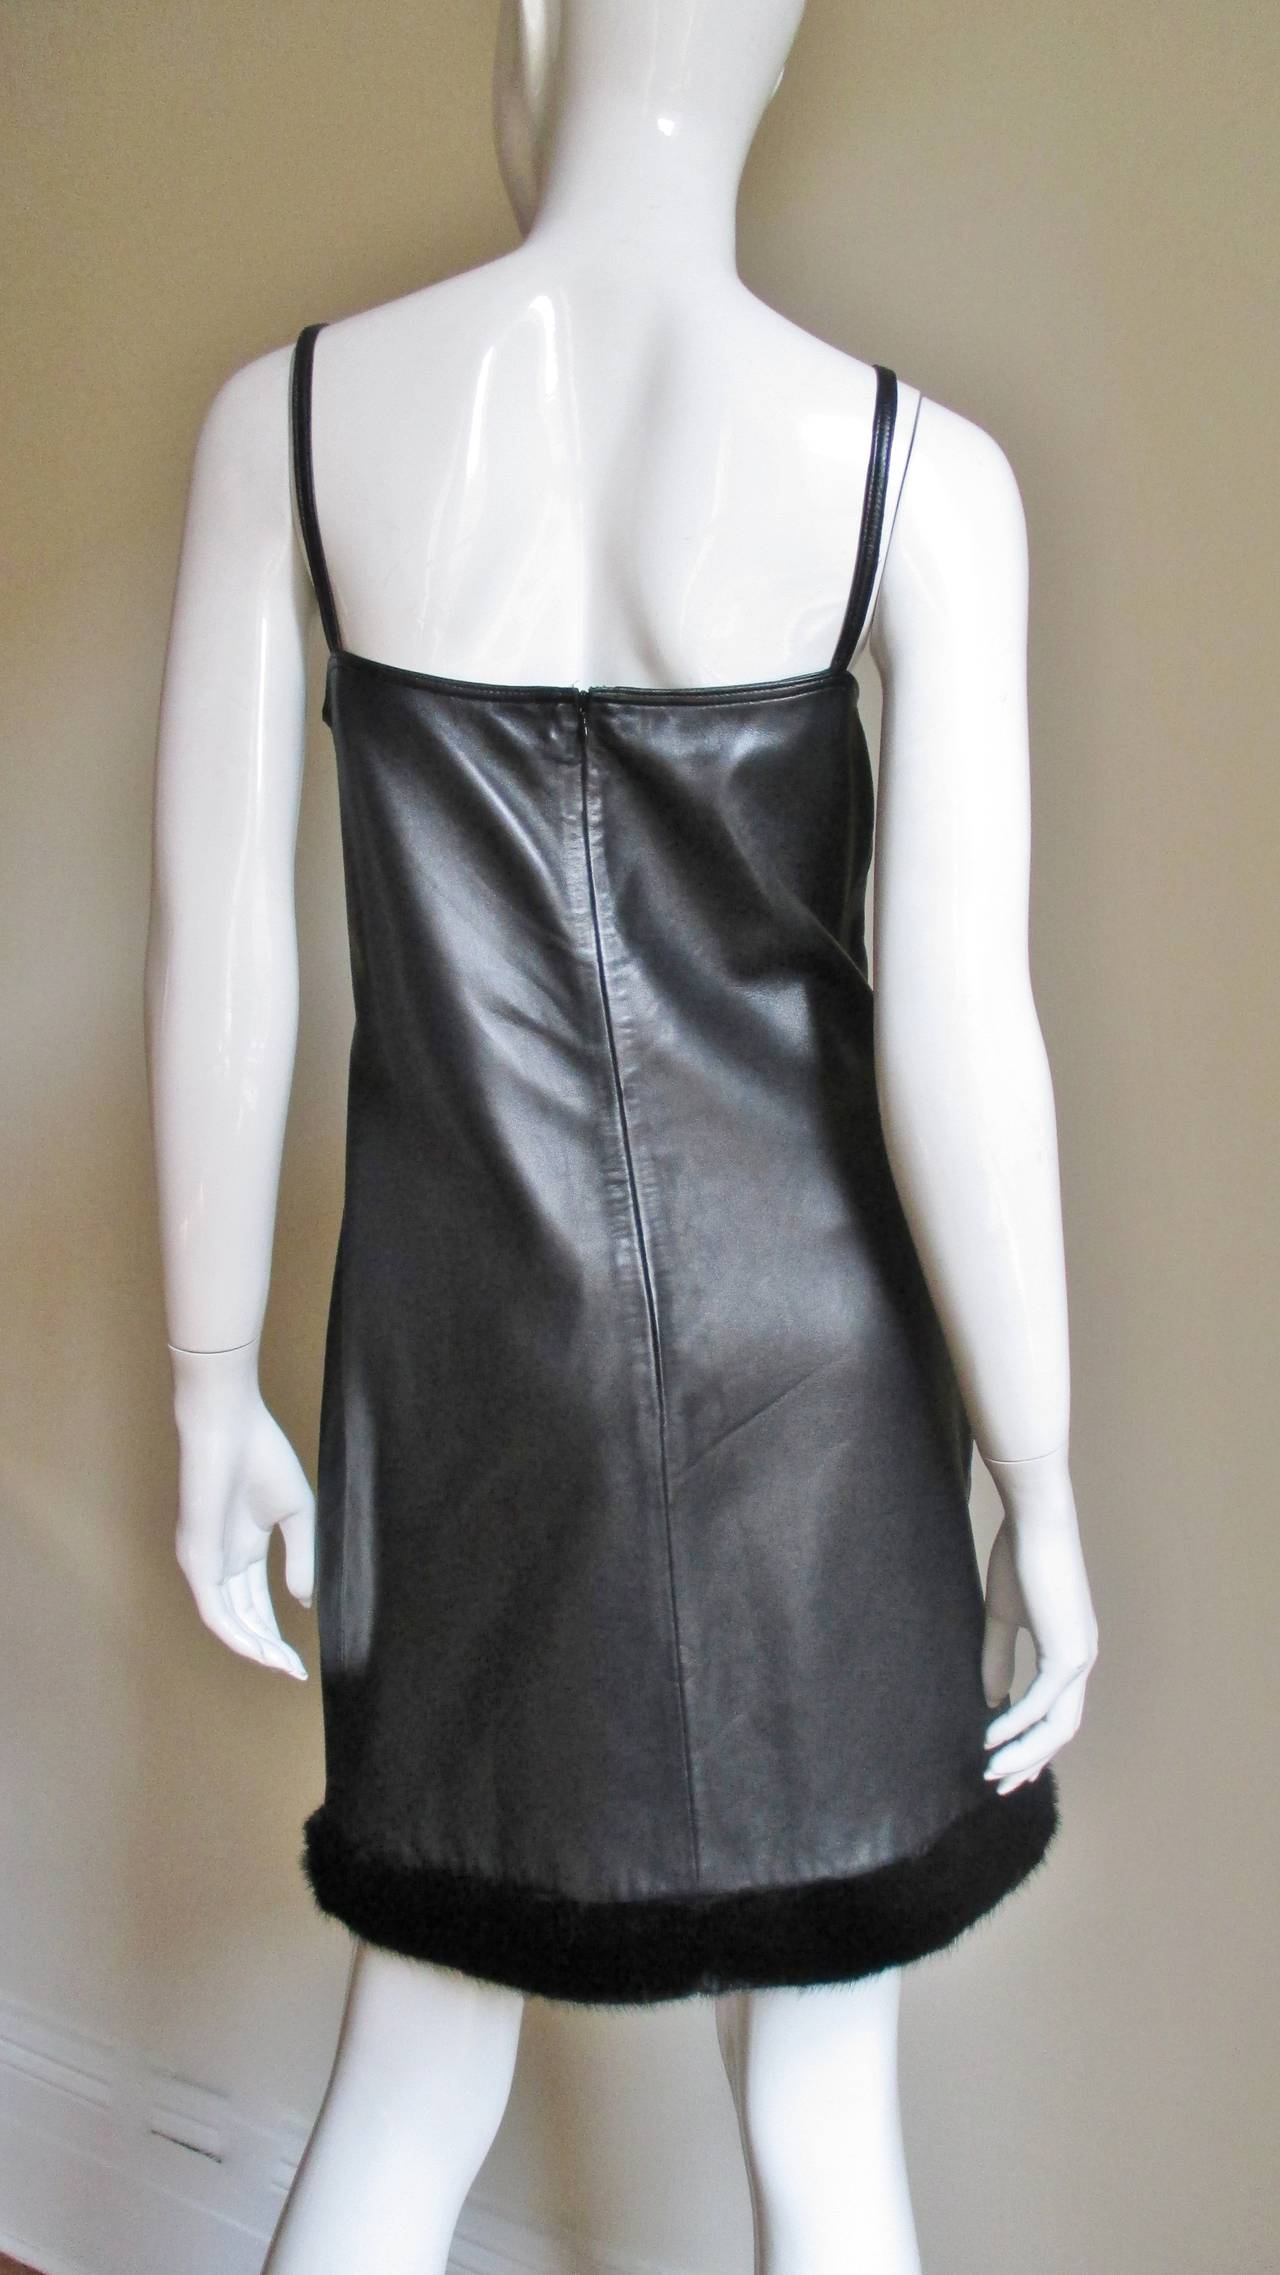 Vintage Gianni Versace Leather Dress with Mink Trim 6